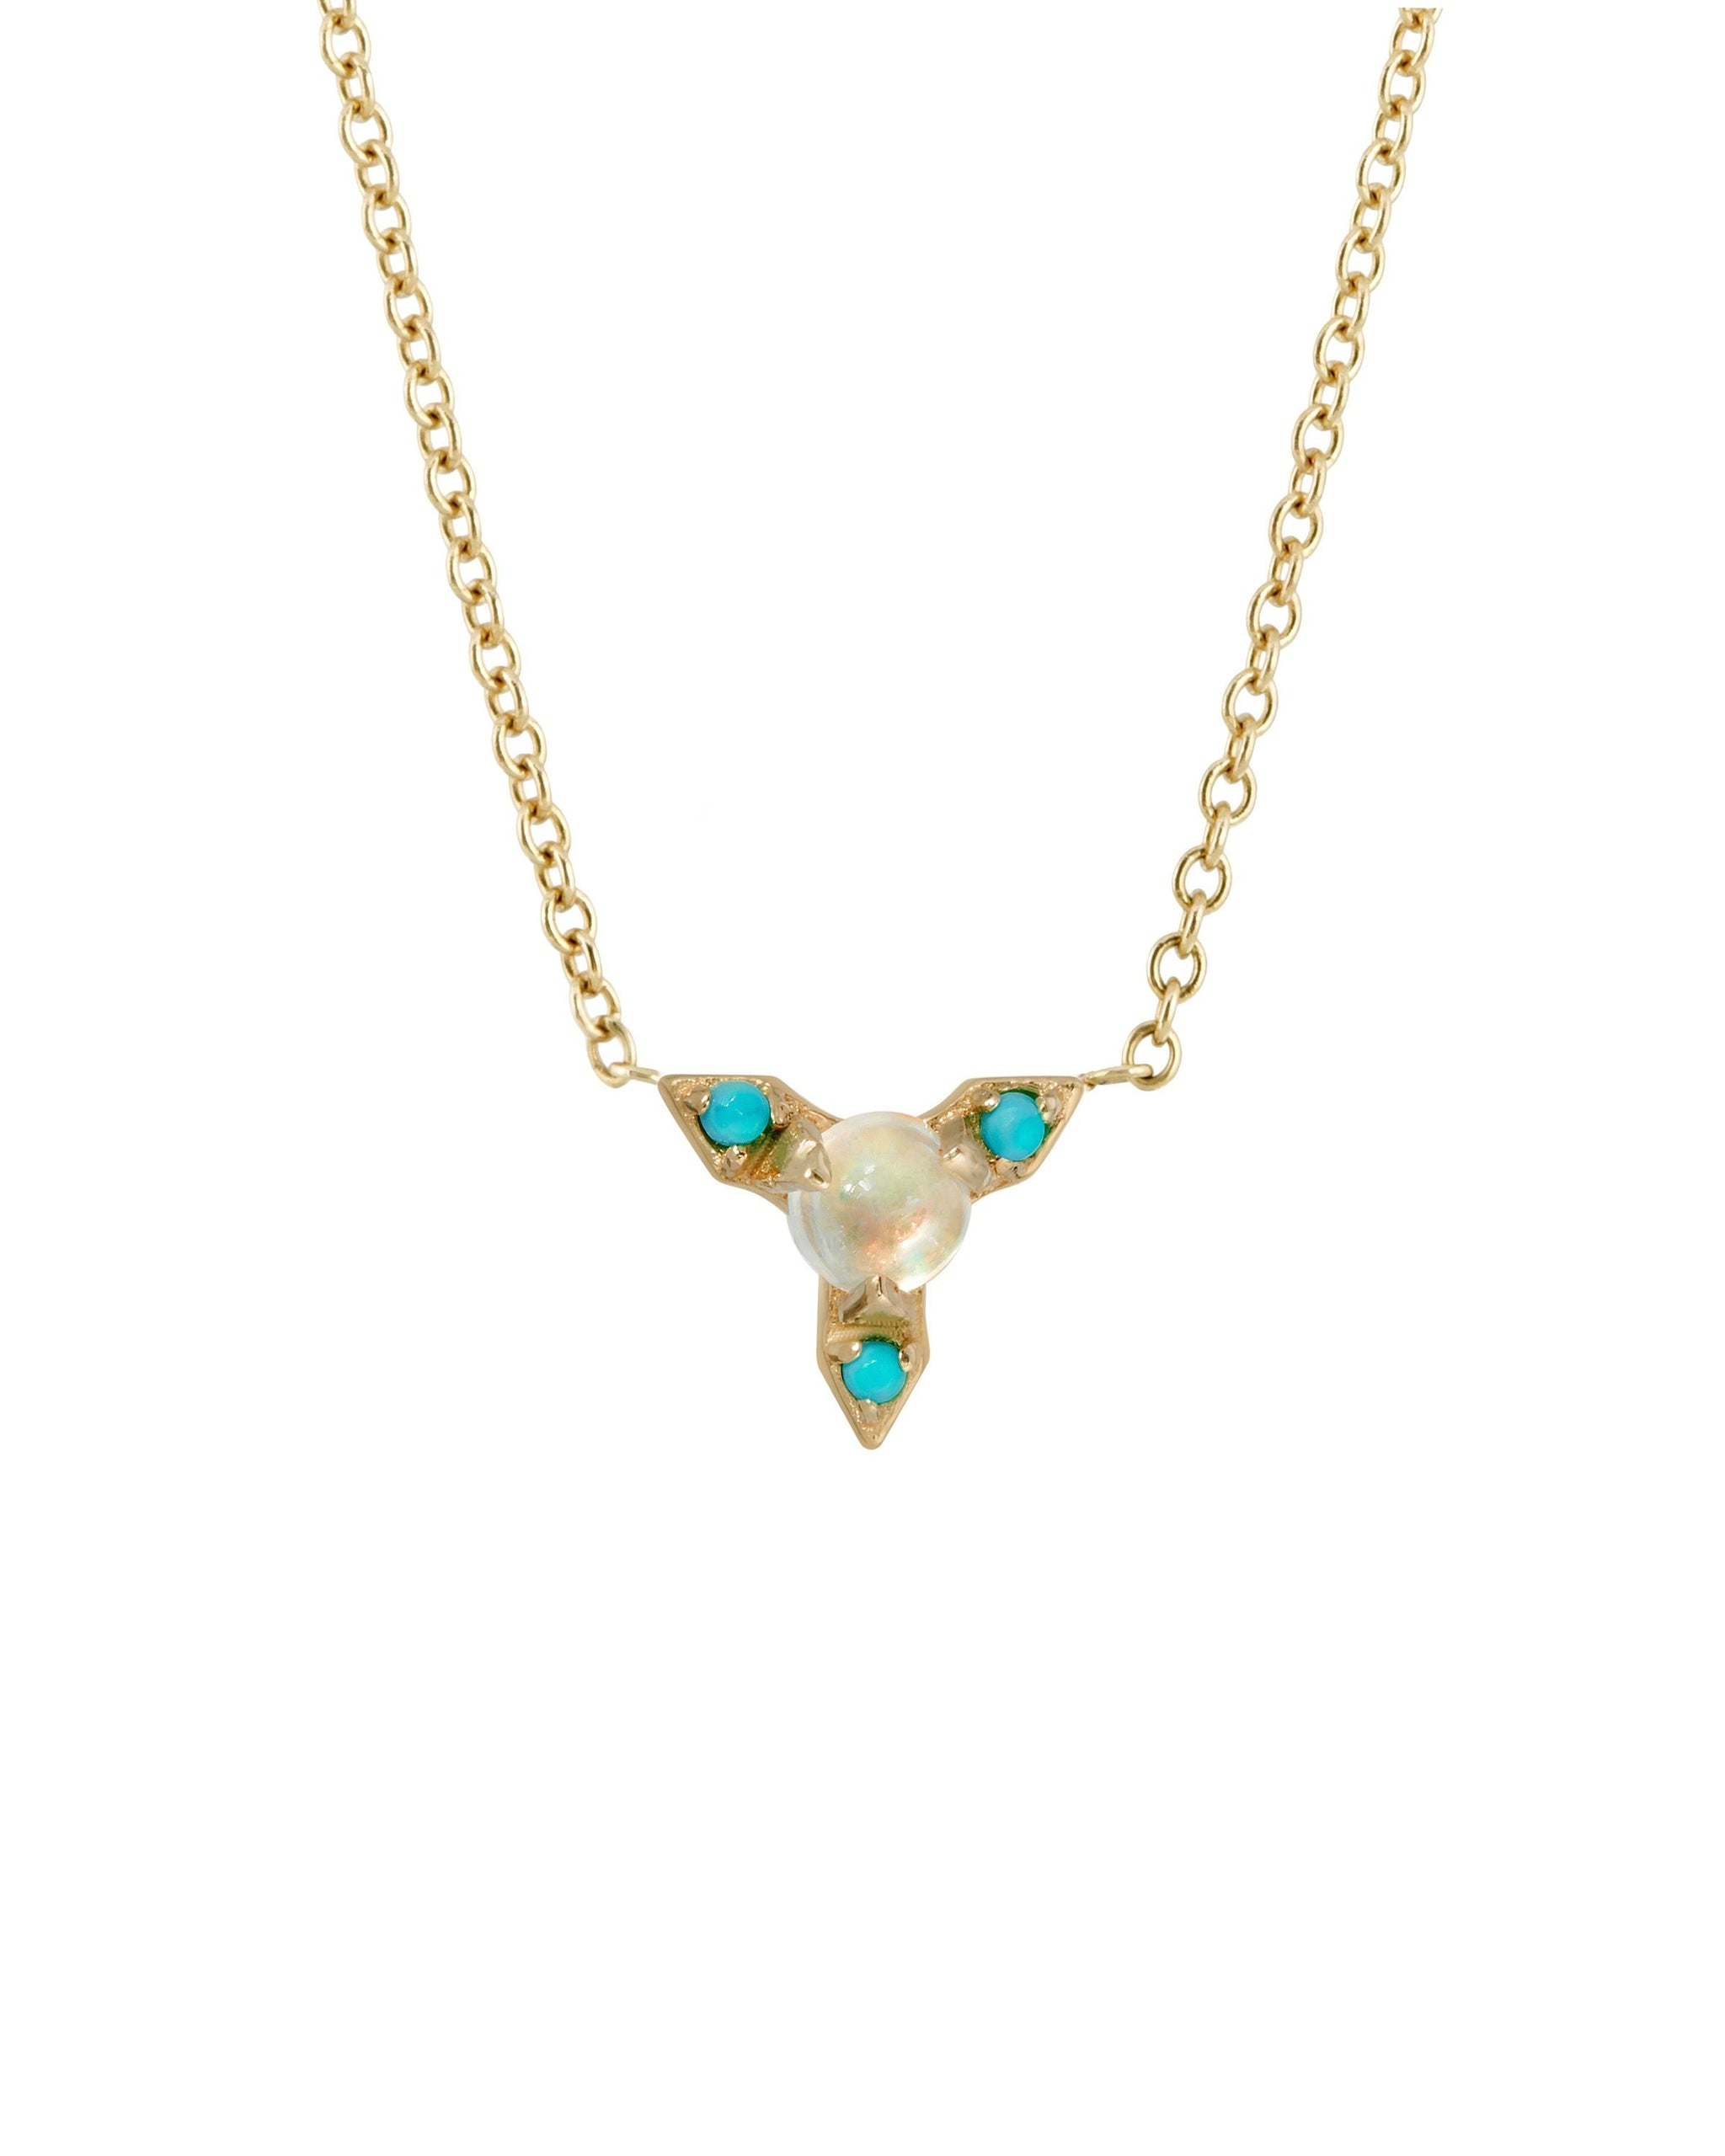 NOVA NECKLACE - TURQUOISE + TOBACCO